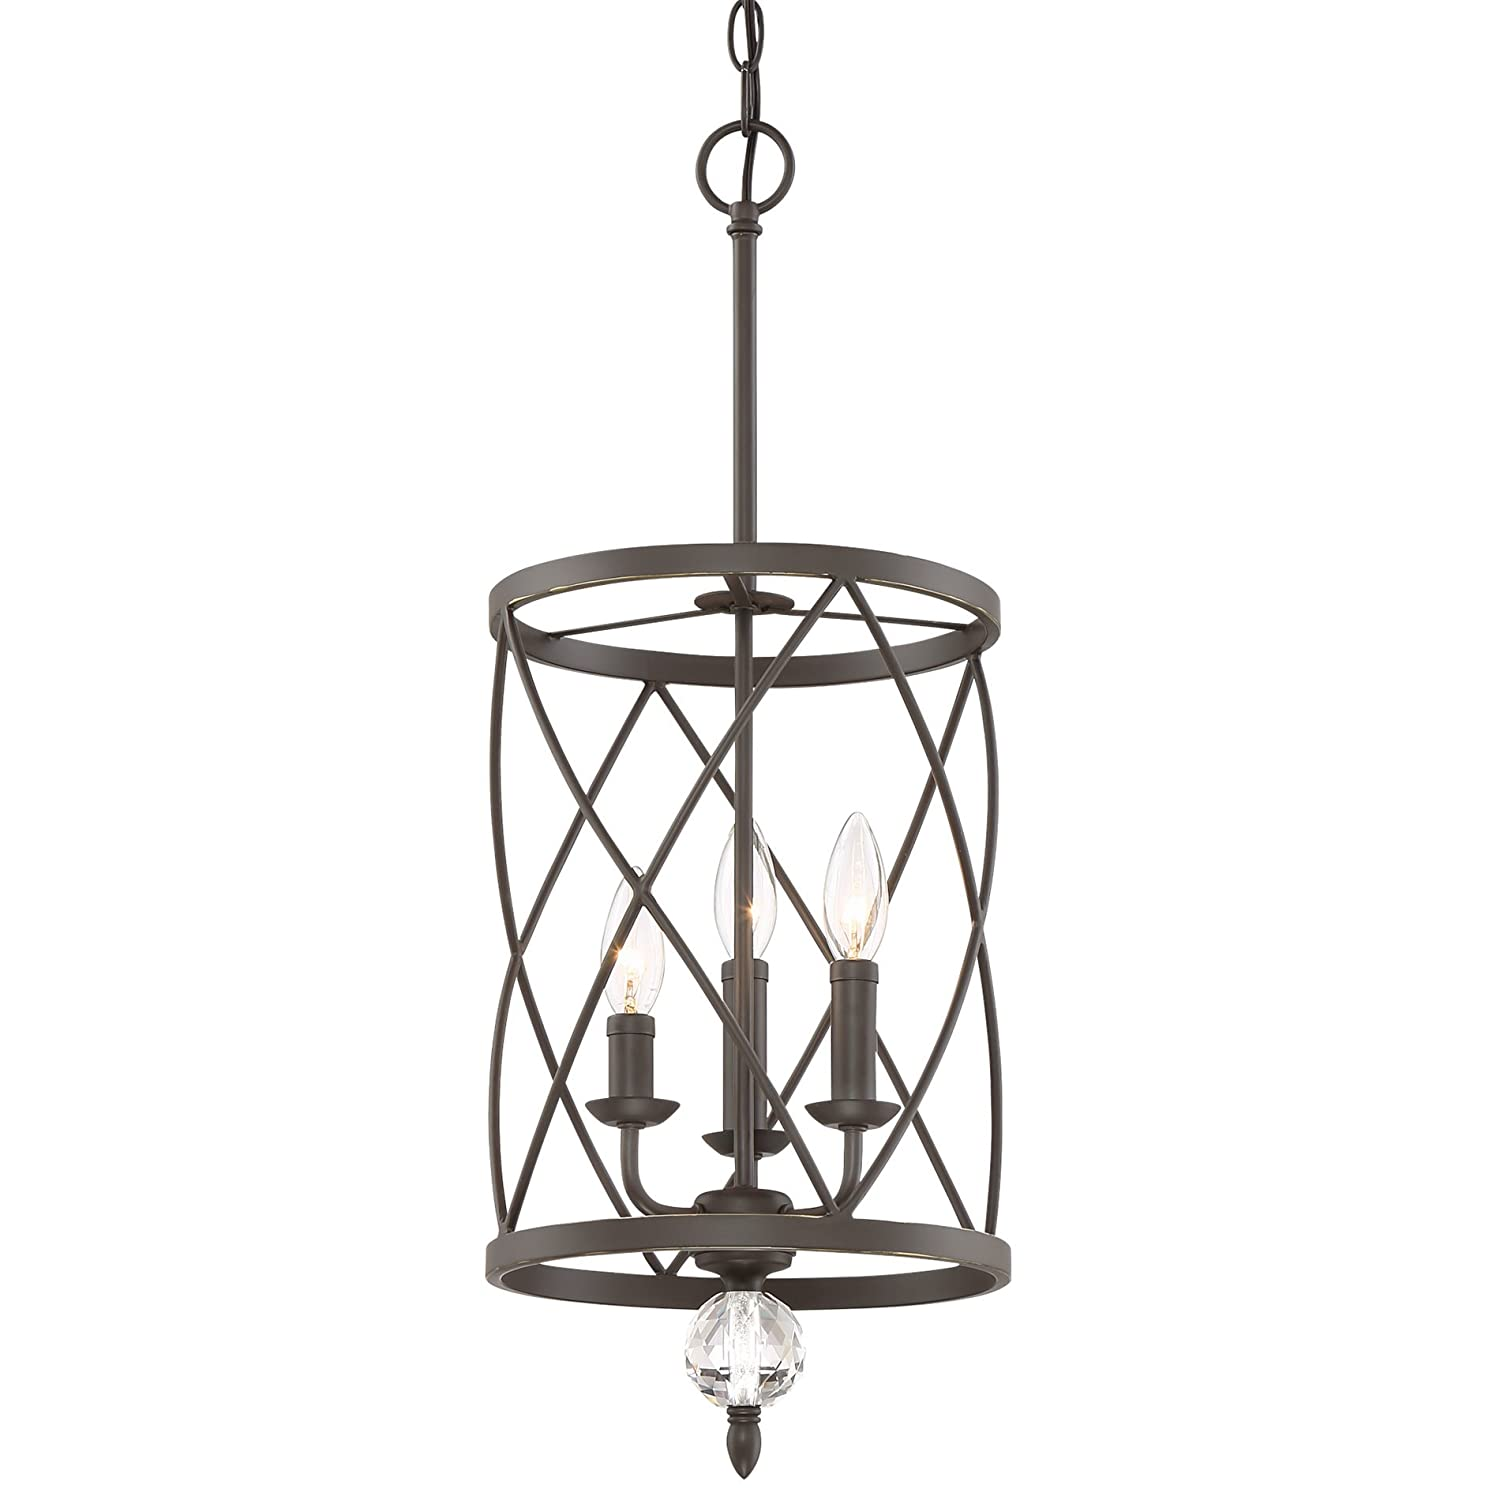 "Kira Home Eleanor 13"" 3-Light Traditional Foyer Light Pendant Chandelier, Cylinder Metal Shade, Adjustable Height, Oil-Rubbed Bronze Finish"